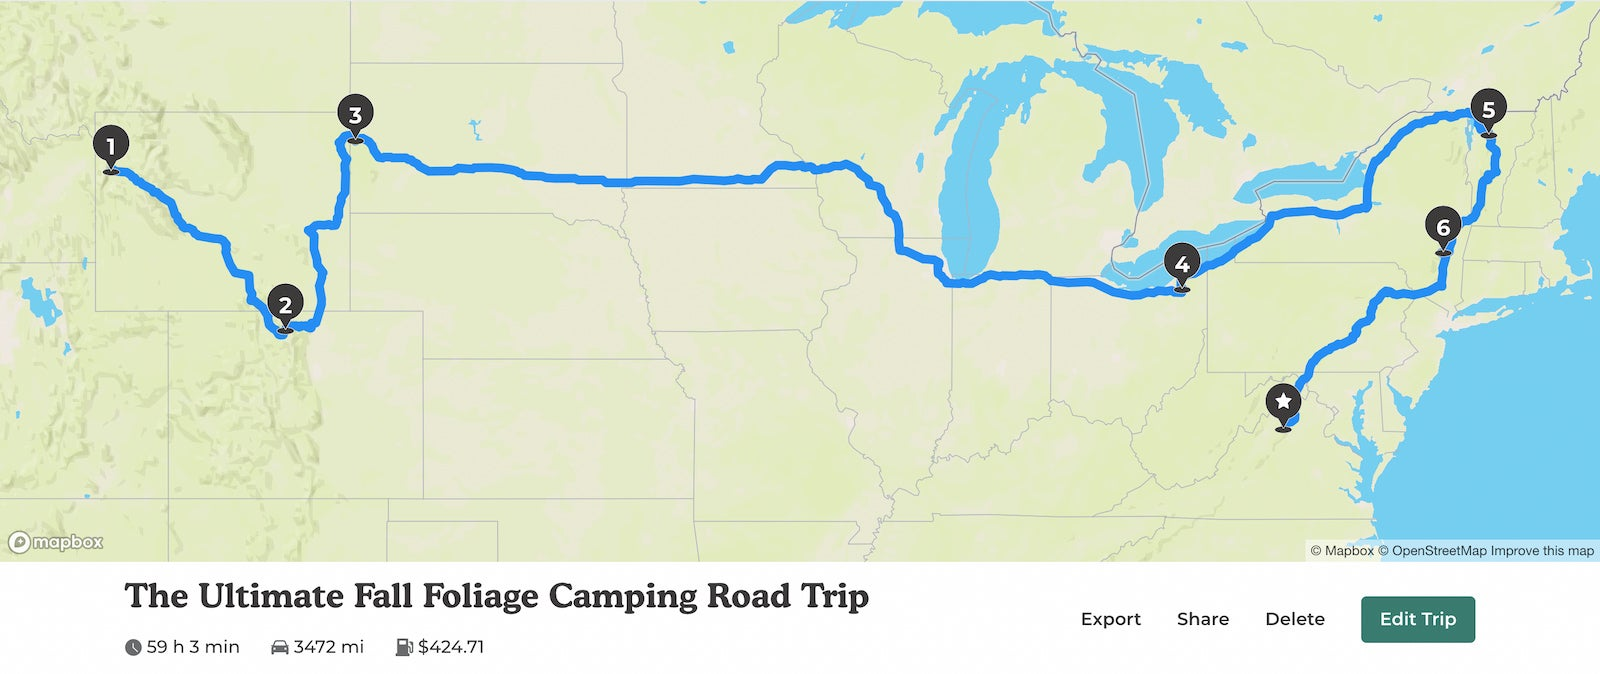 The Dyrt's ultimate fall foliage camping road trip 2021.